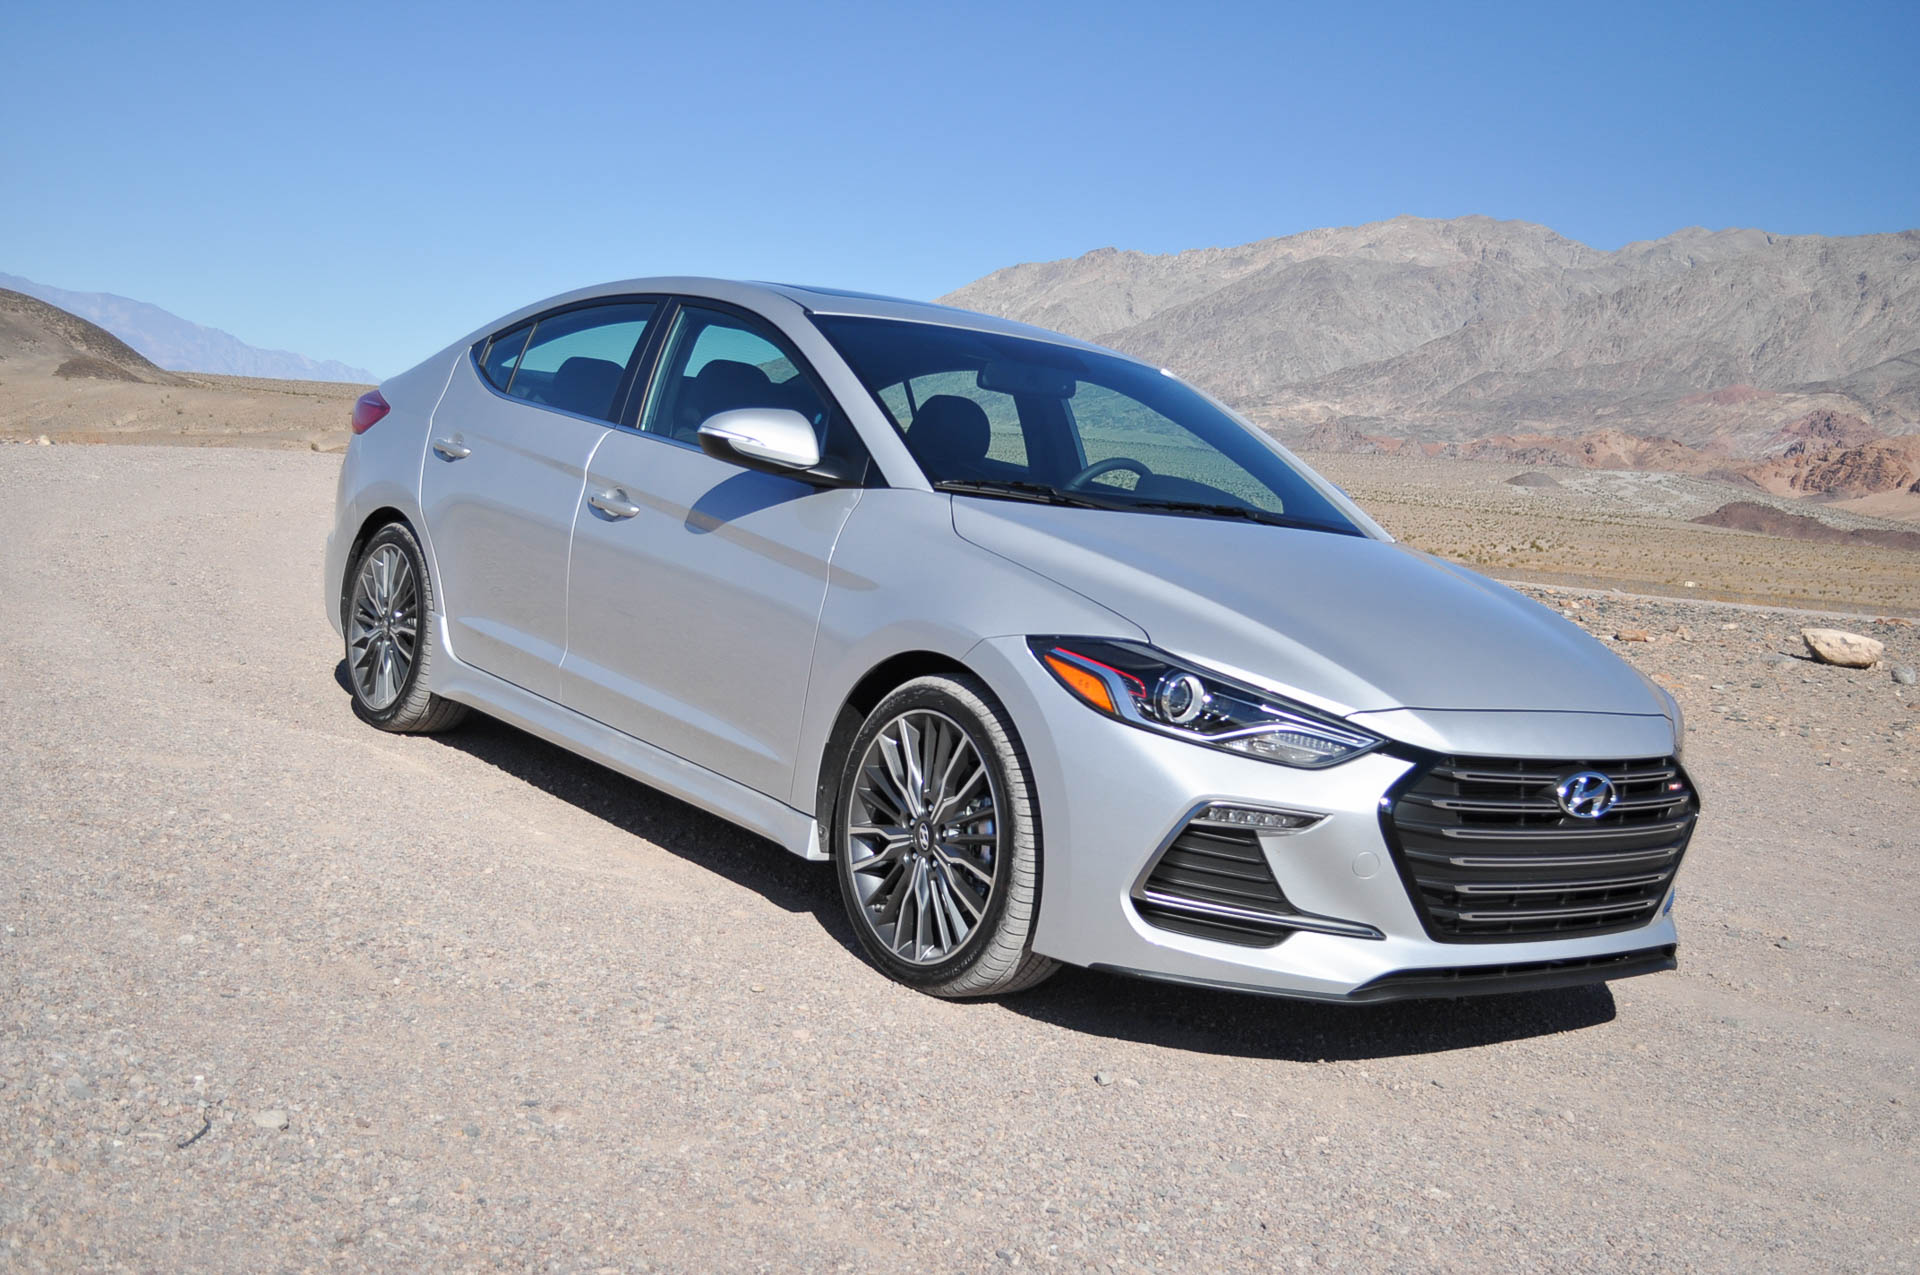 Used Cars Boston >> 2017 Hyundai Elantra Sport first drive: close encounter of a turbocharged kind